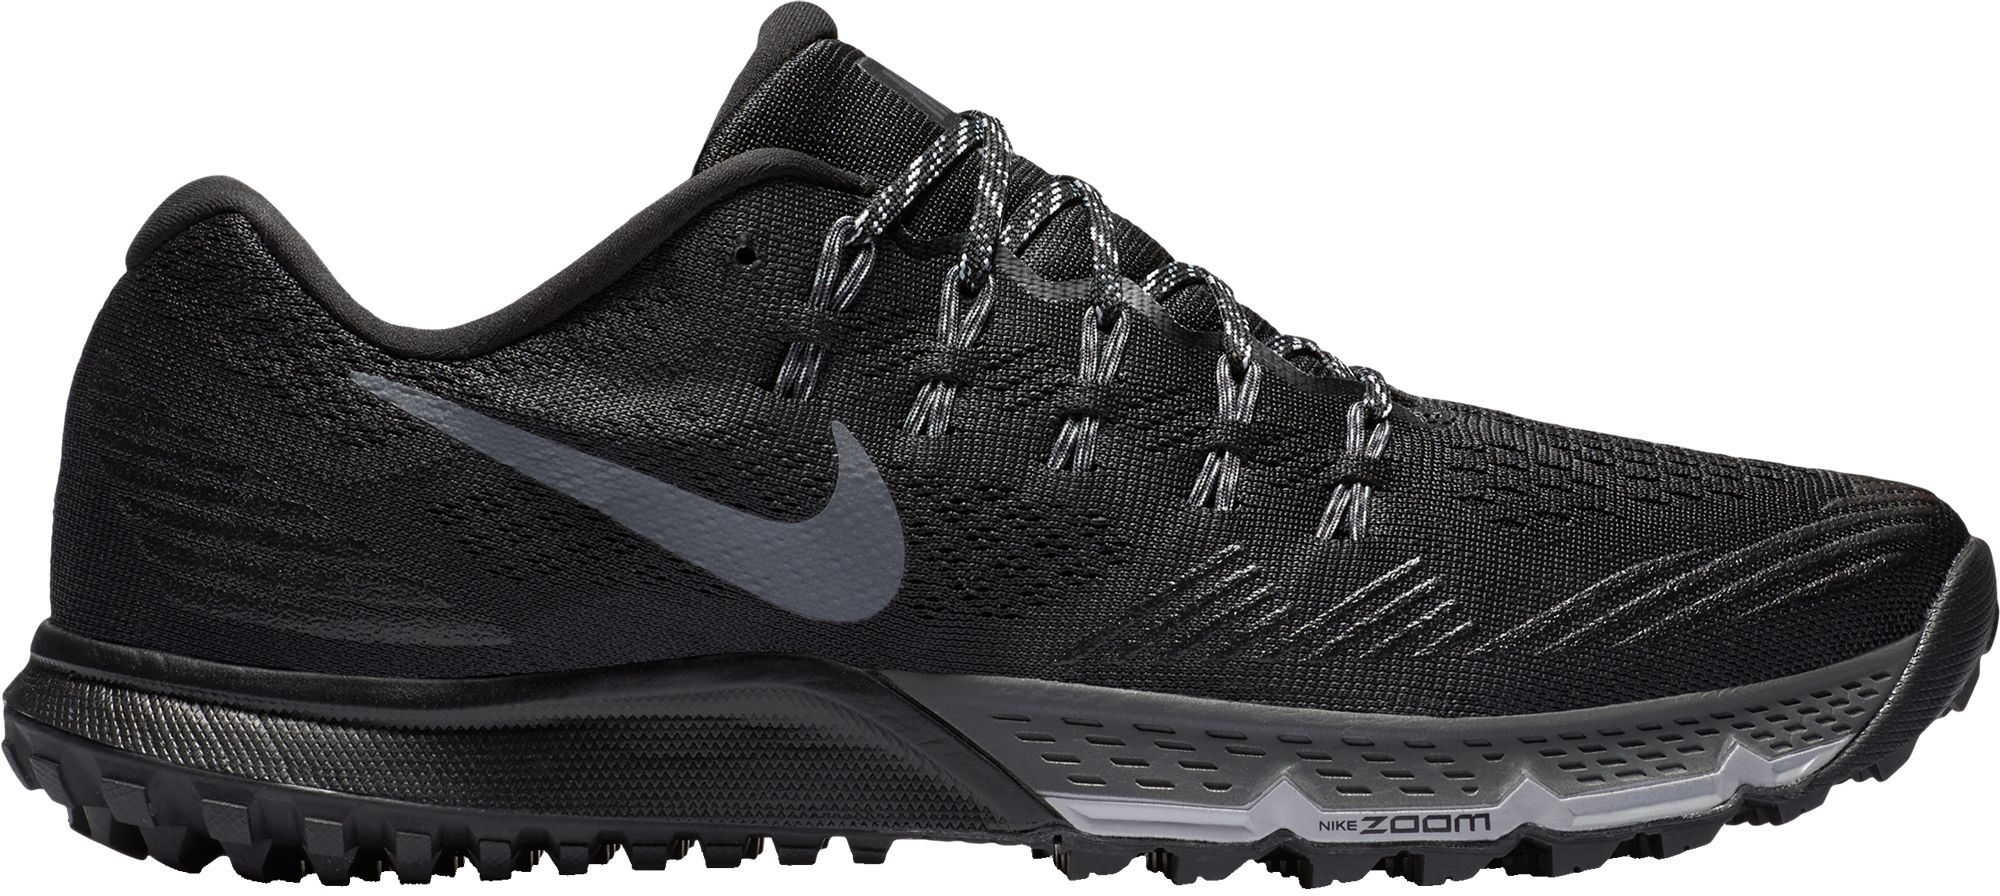 nike trail running shoes noimagefound ??? OVSBDXL